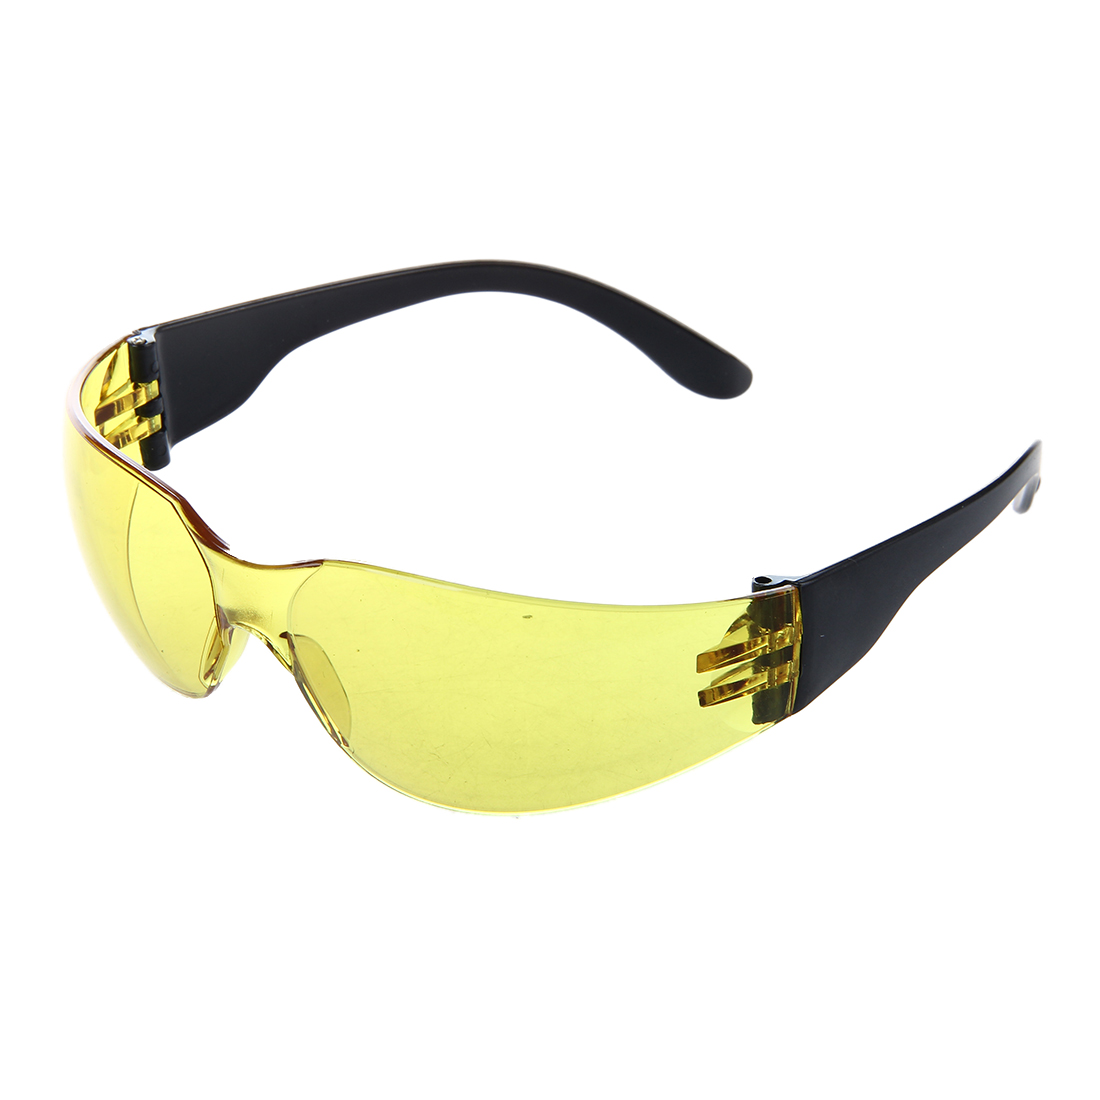 MOOL Yellow Clear Lens Indoor Outdoor Sports Safety Glasses Protective Eyewear